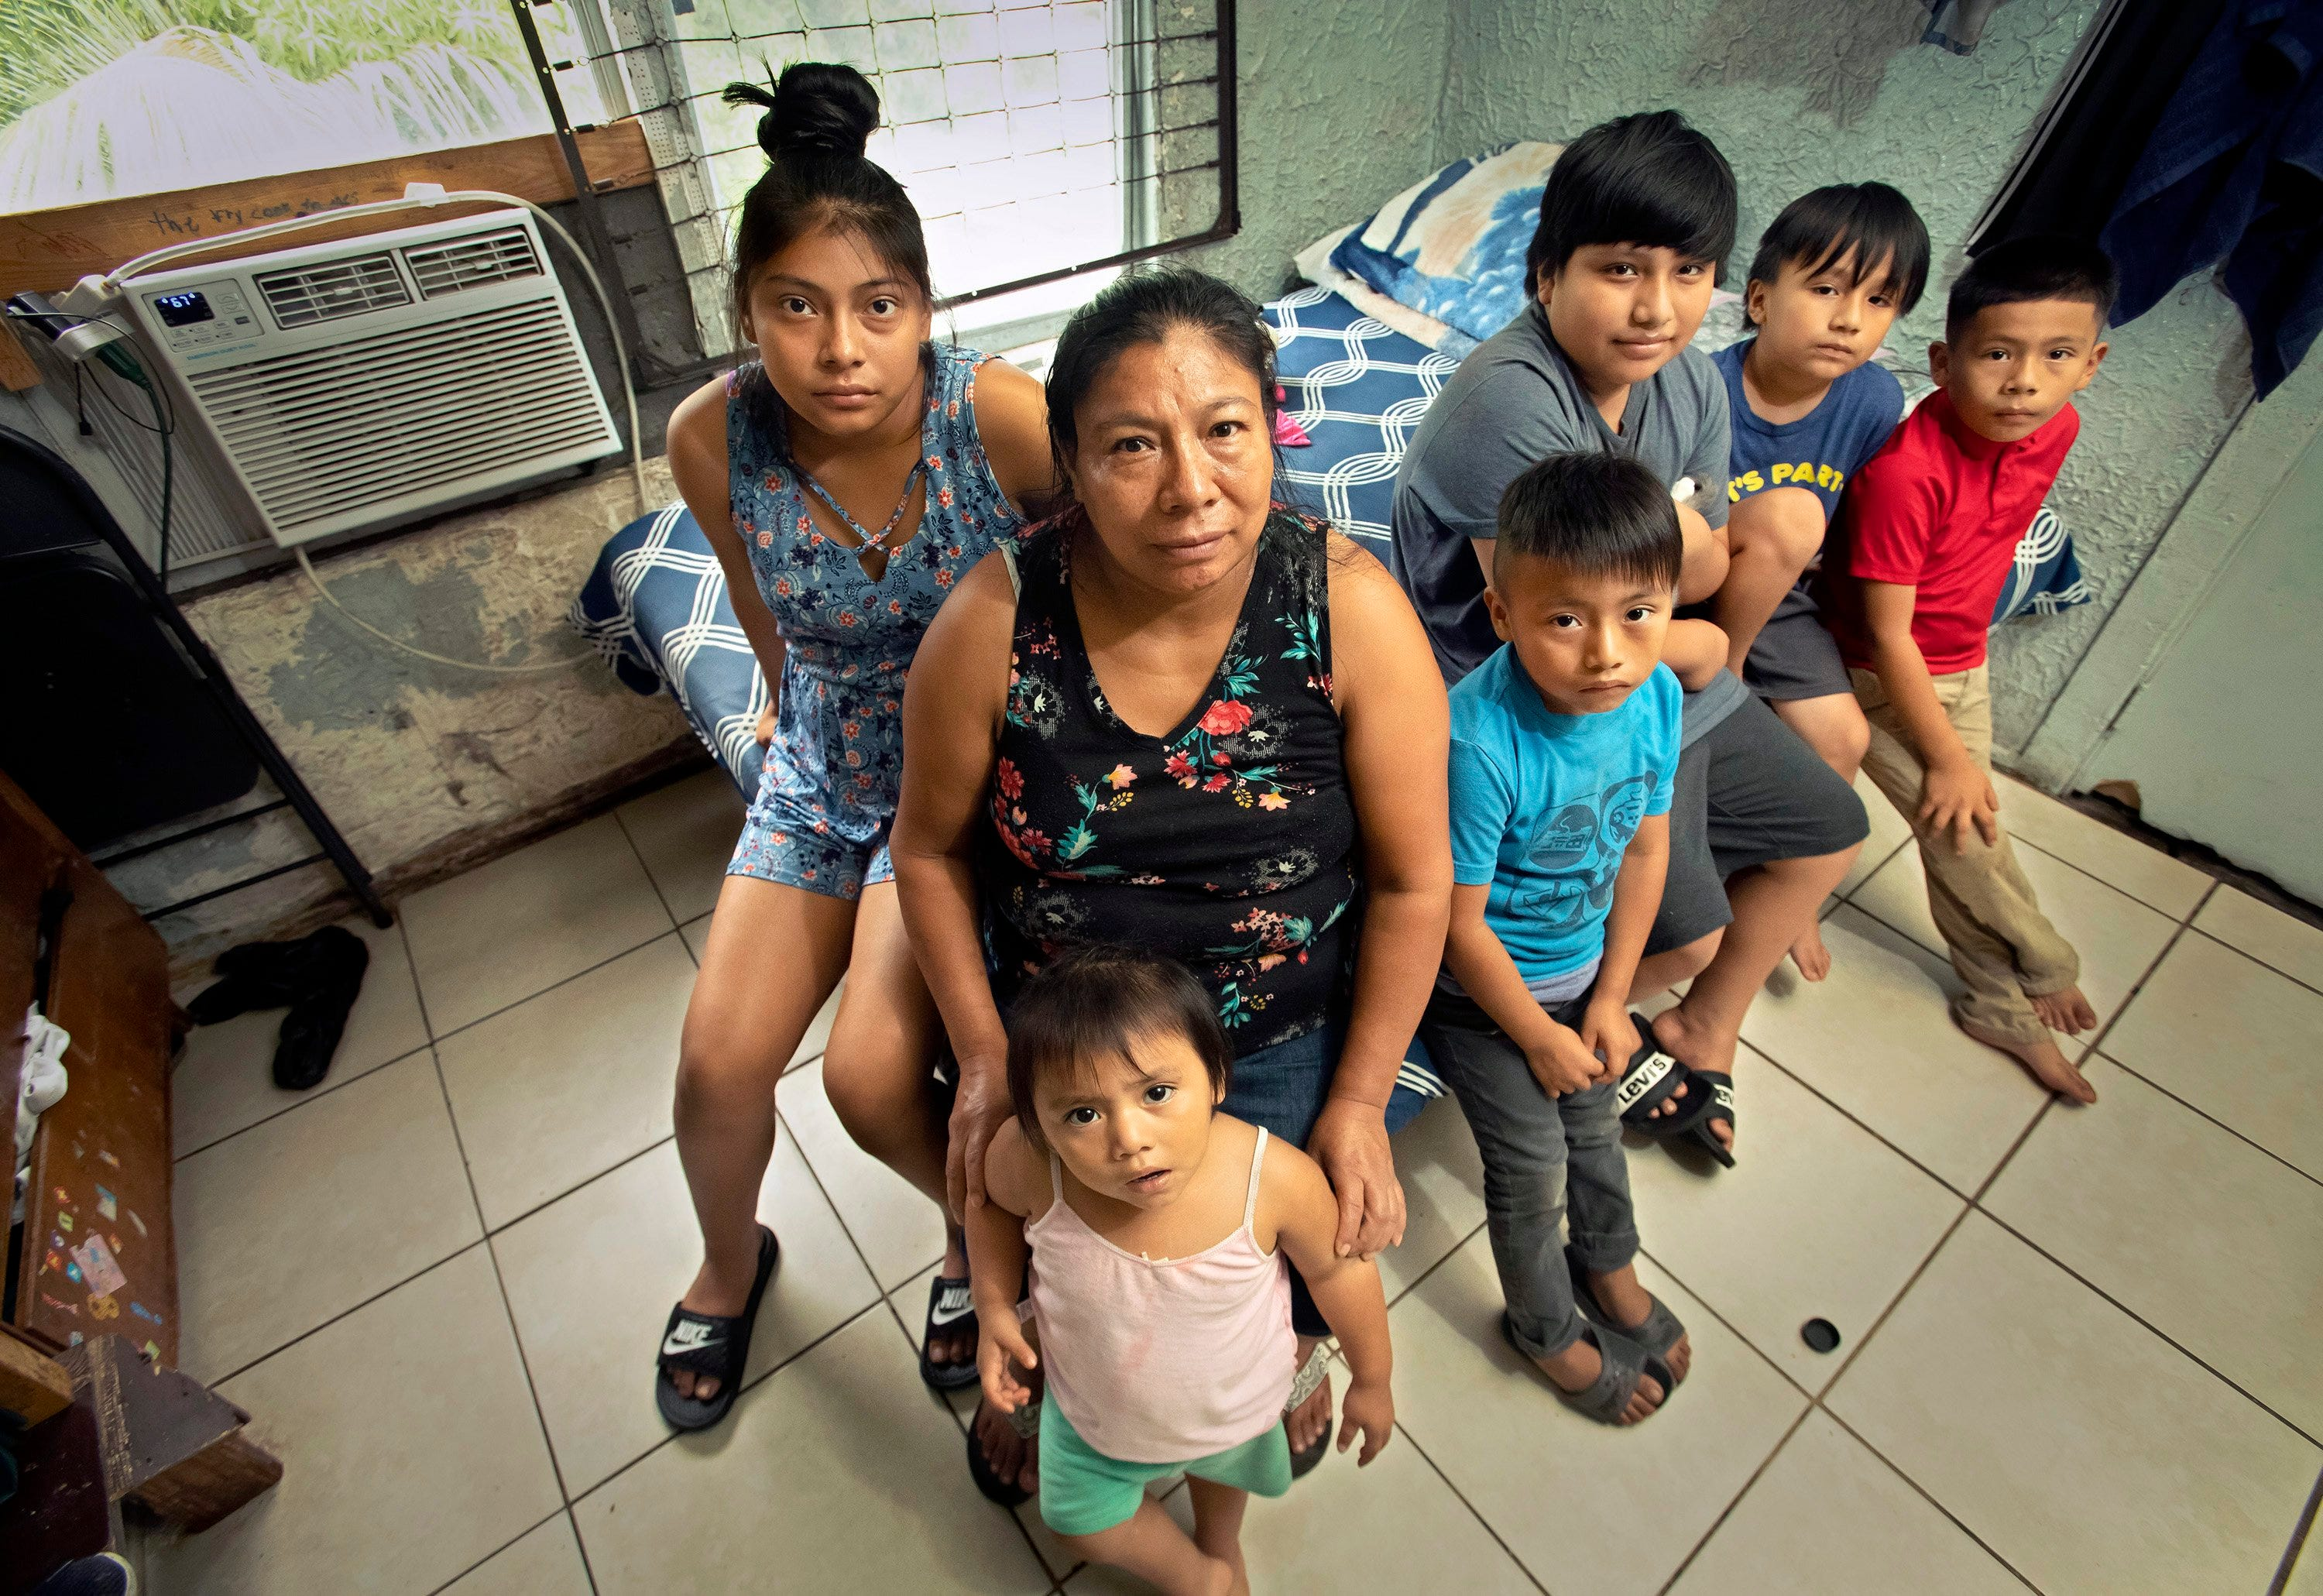 Antonio Sebastian Juan's family still lives in the home where he was killed in May 2018. From left are Belci Ramirez, 14, his stepdaughter; Cristina Ramirez, wife; Adalyn Perez, 2, step granddaughter; Dymer Perez, 6, step grandson; James Sebastian Juan, 11, son; Fidencio Sebastian Juan, 6, son; and Jeffrey Sebastian Juan, 7, son.